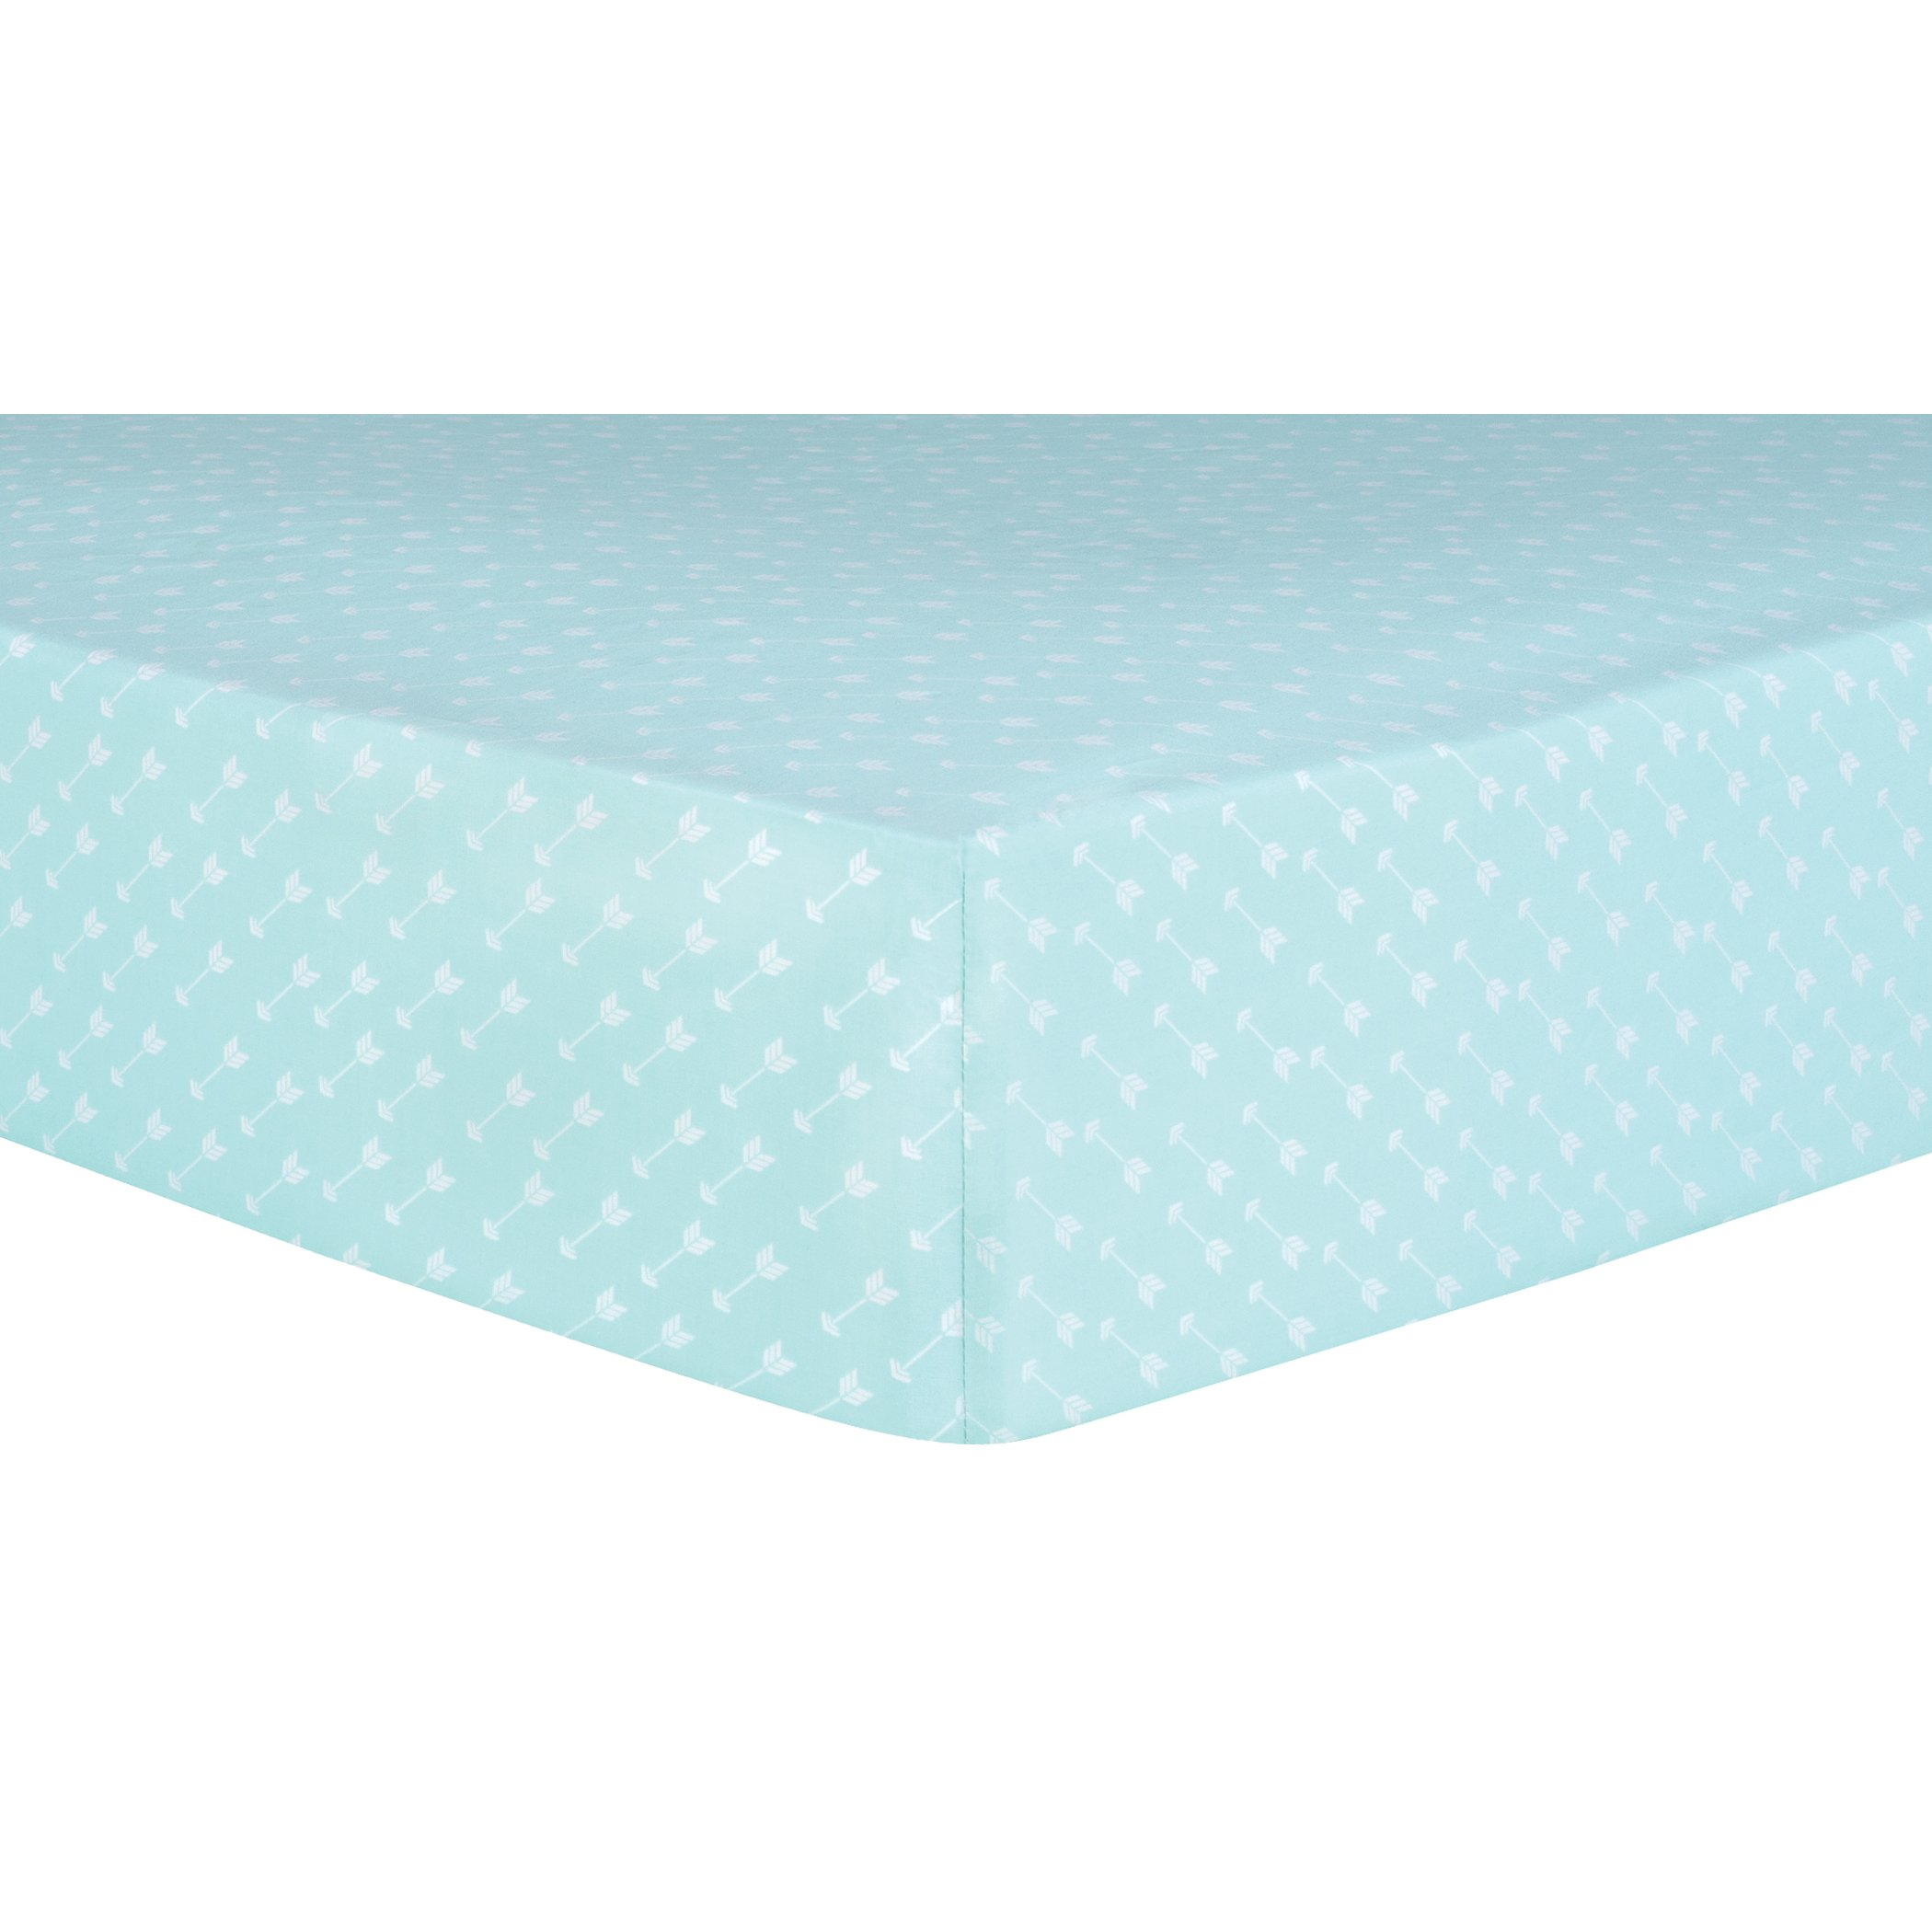 Trend Lab Arrows Fitted Crib Sheet, Teal, White